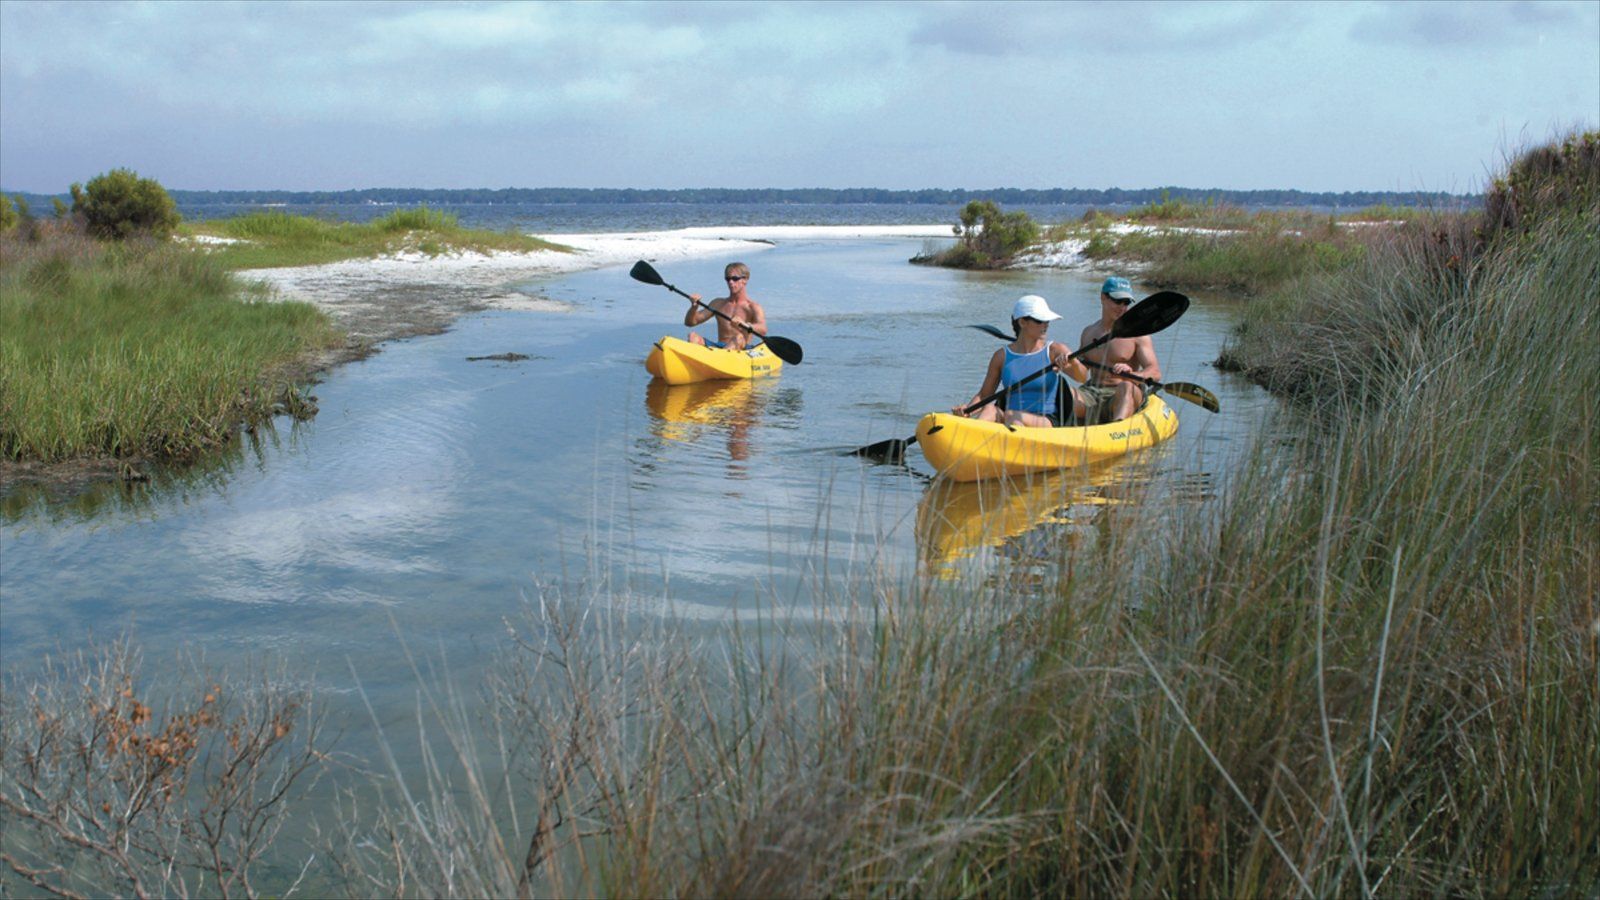 Pensacola Beach which includes a sandy beach, general coastal views and kayaking or canoeing